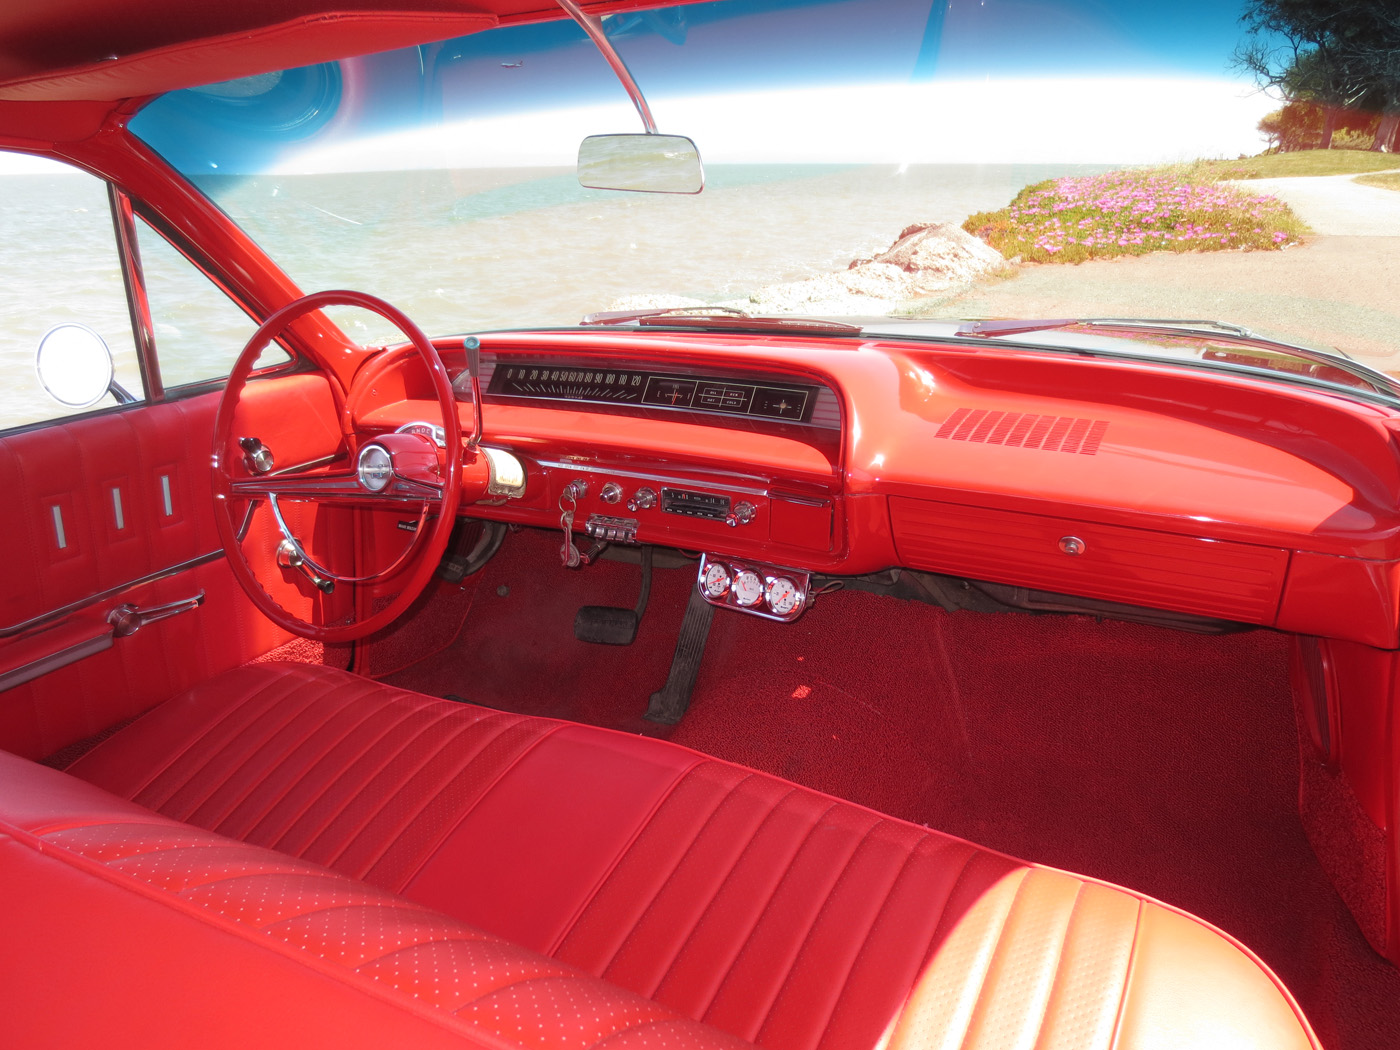 1963 Chevrolet Bel Air - Pictures